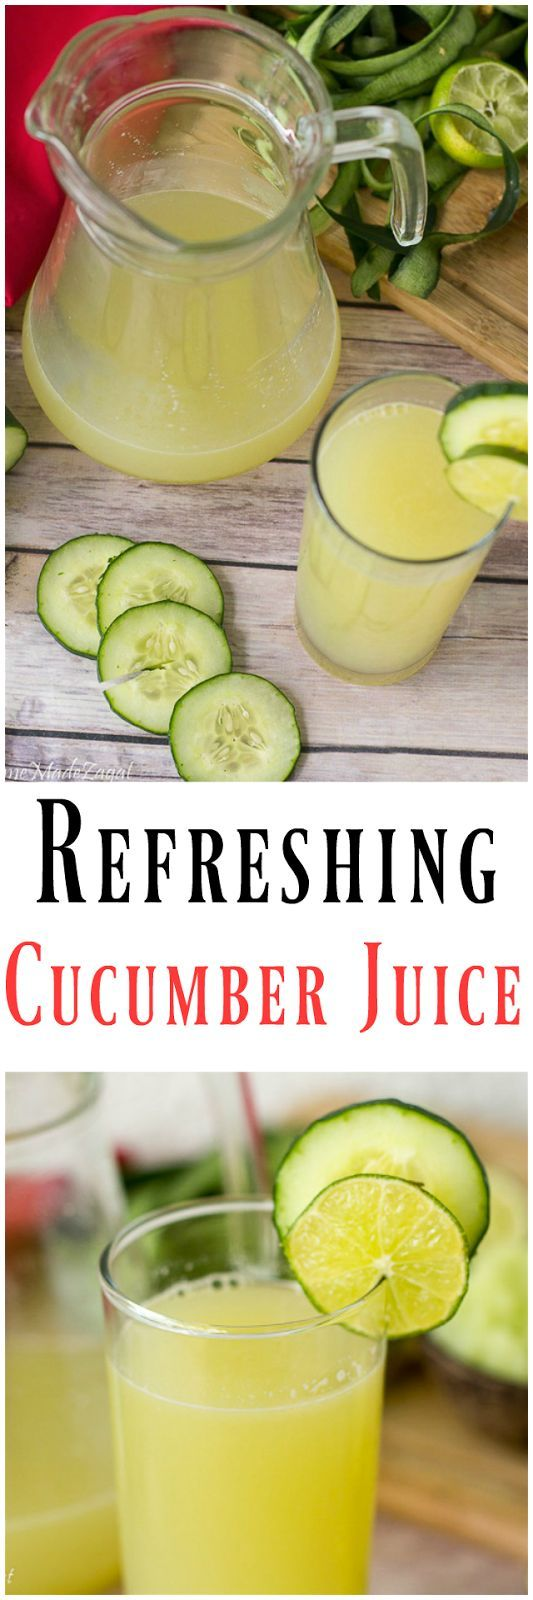 An extremely refreshing juice made from cucumber and mixed with lime and a little ginger. Not only refreshing but packed with healthy benefits